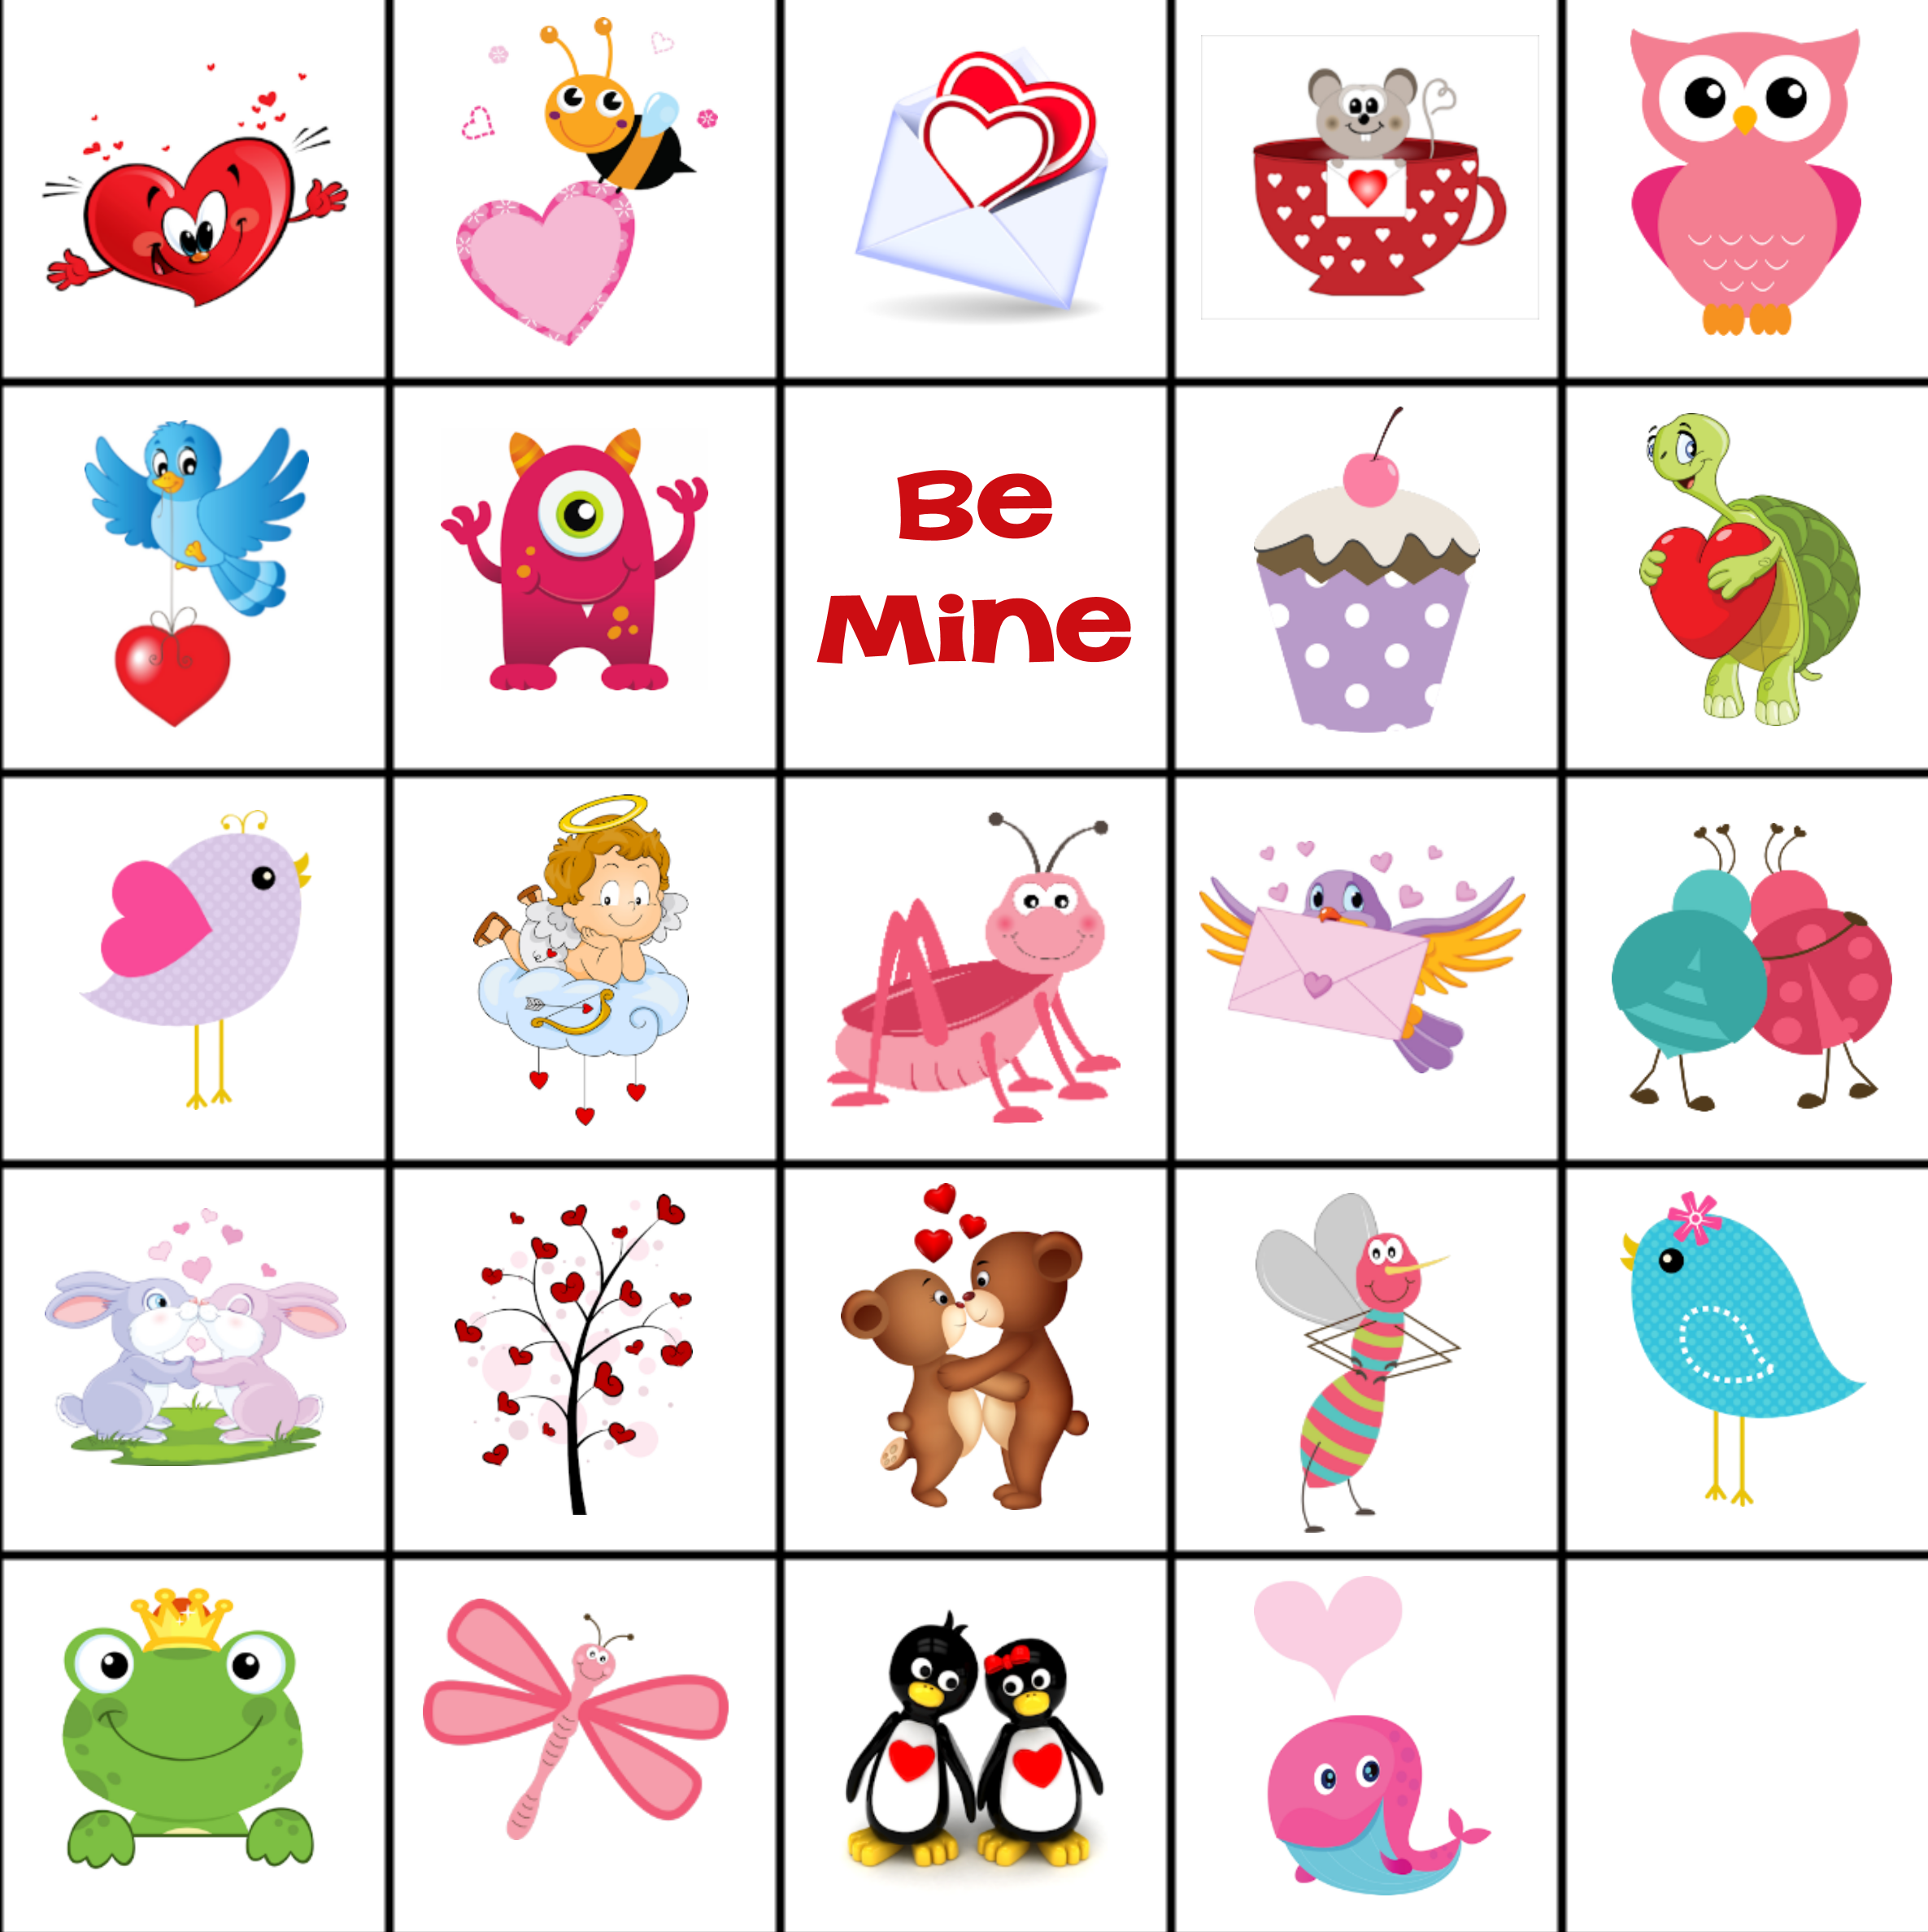 image about Printable Memory Games called No cost Printable Valentine Memory Match